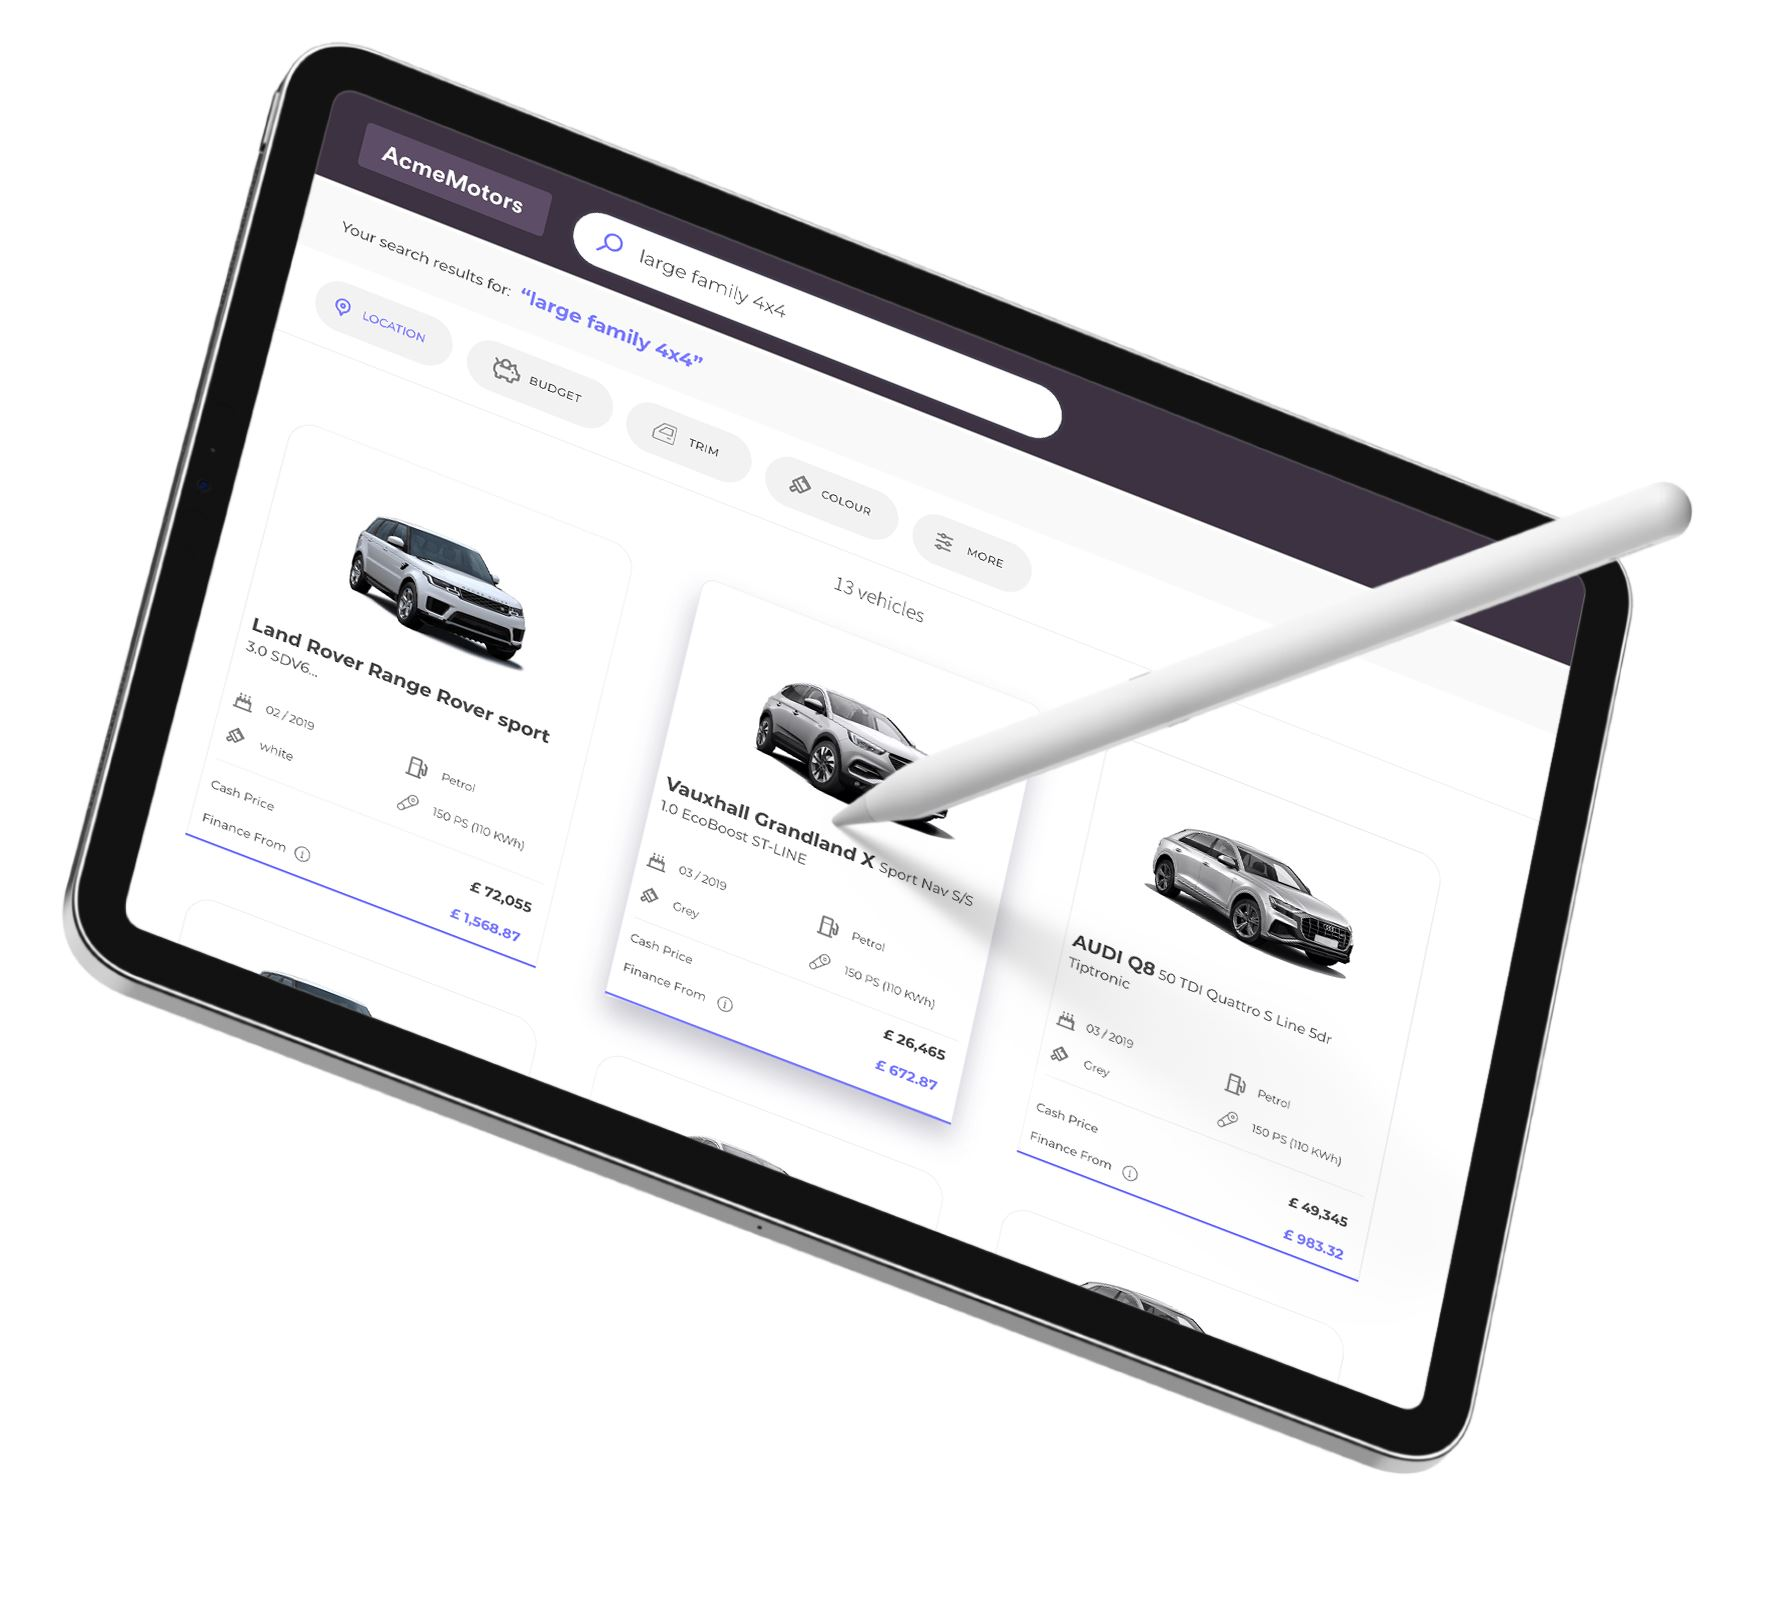 Why traditional vehicle search is too limiting